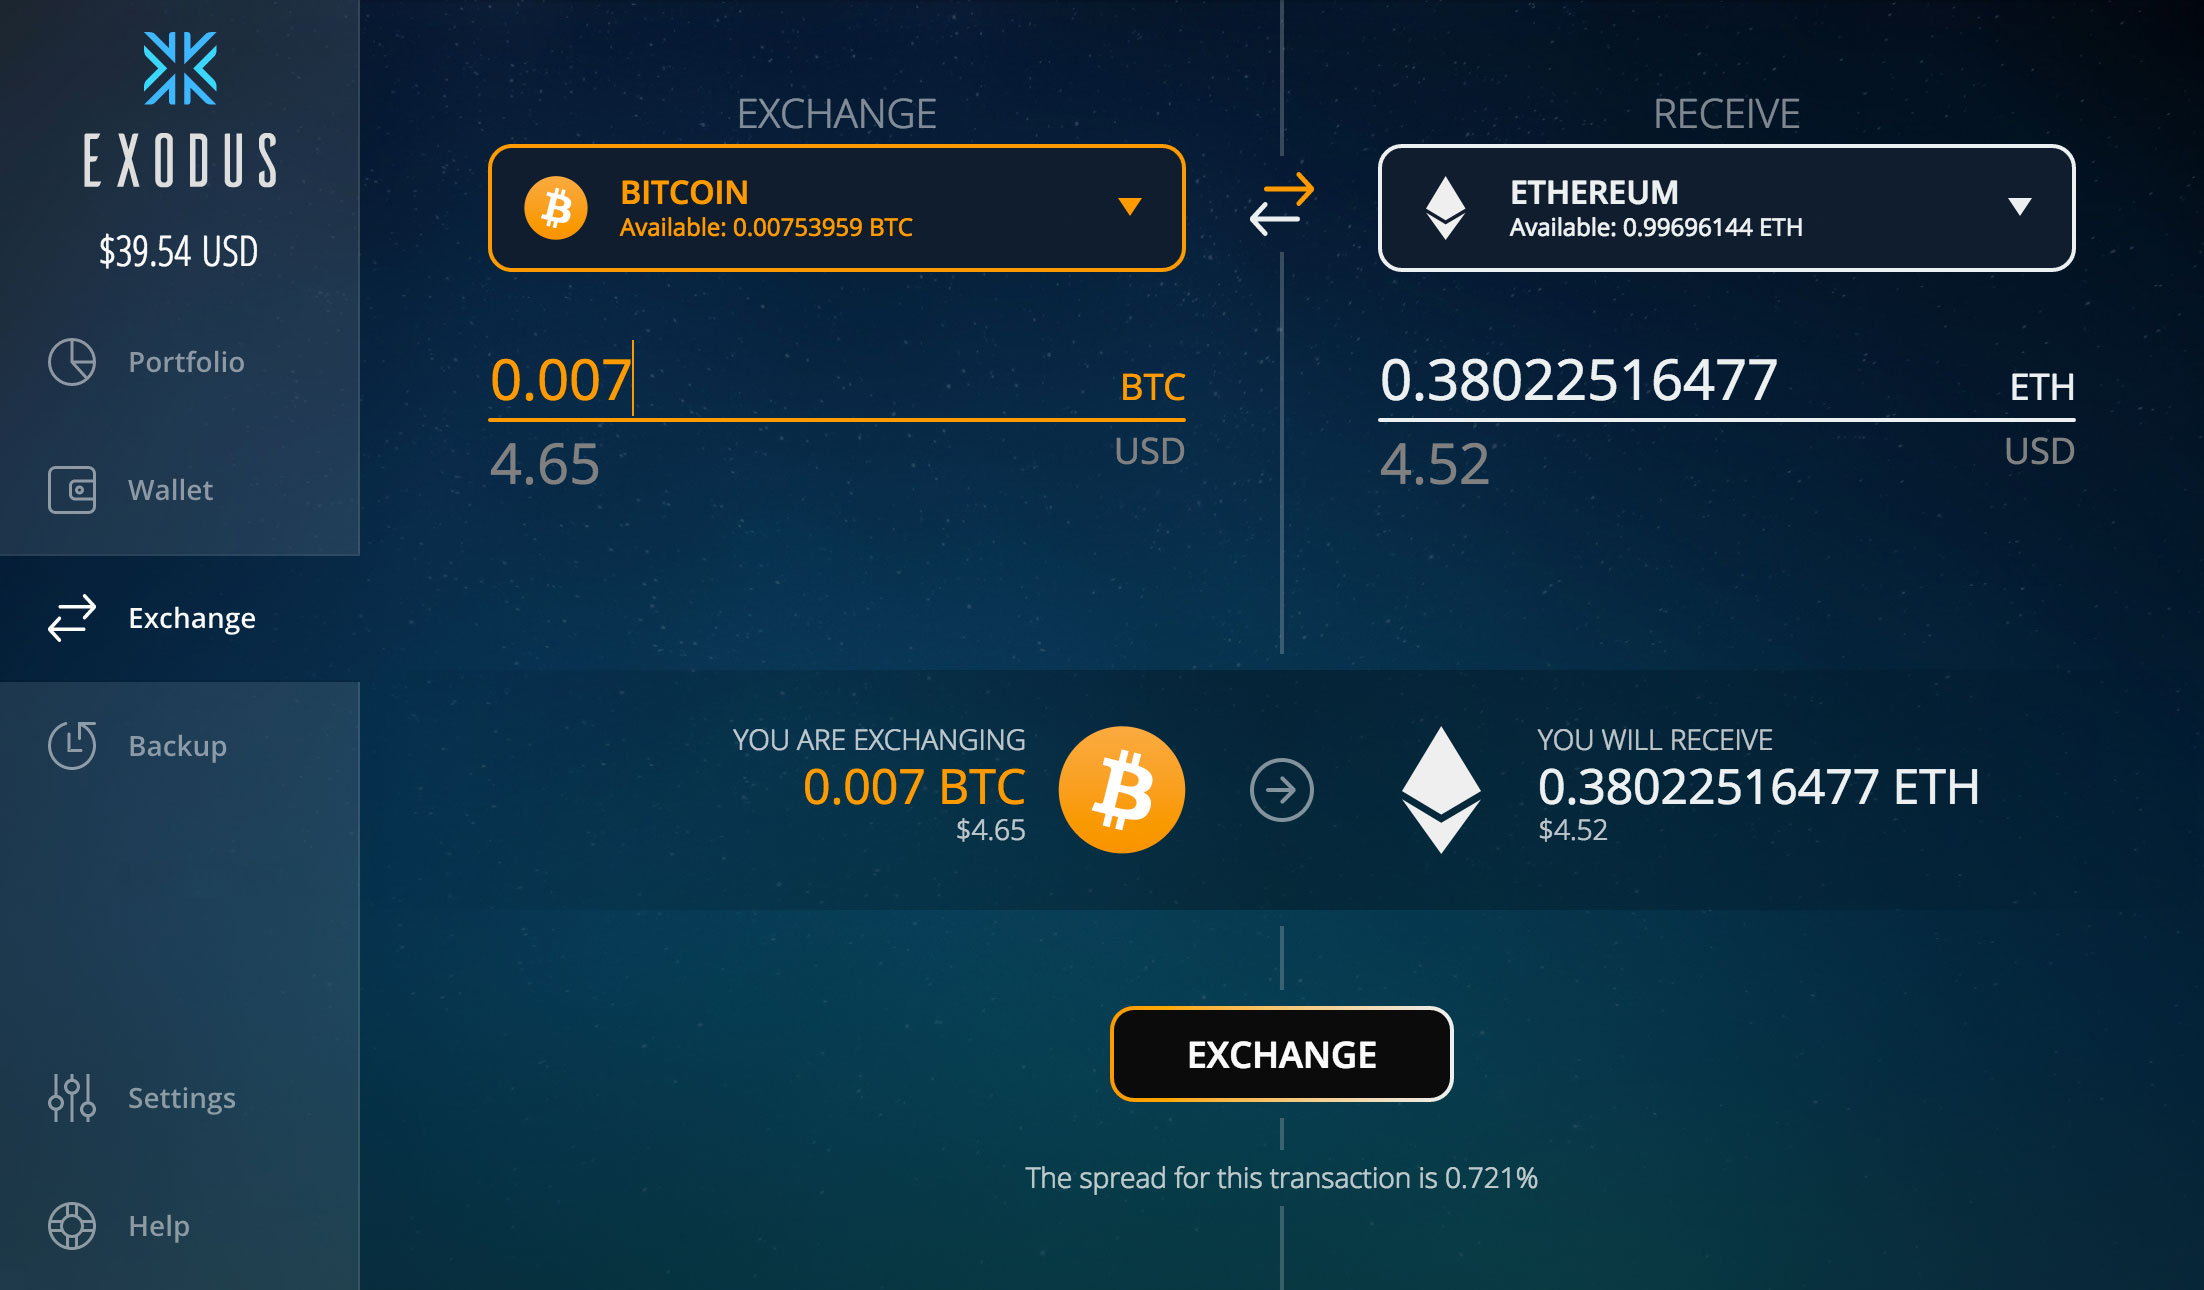 Exodus Exchange